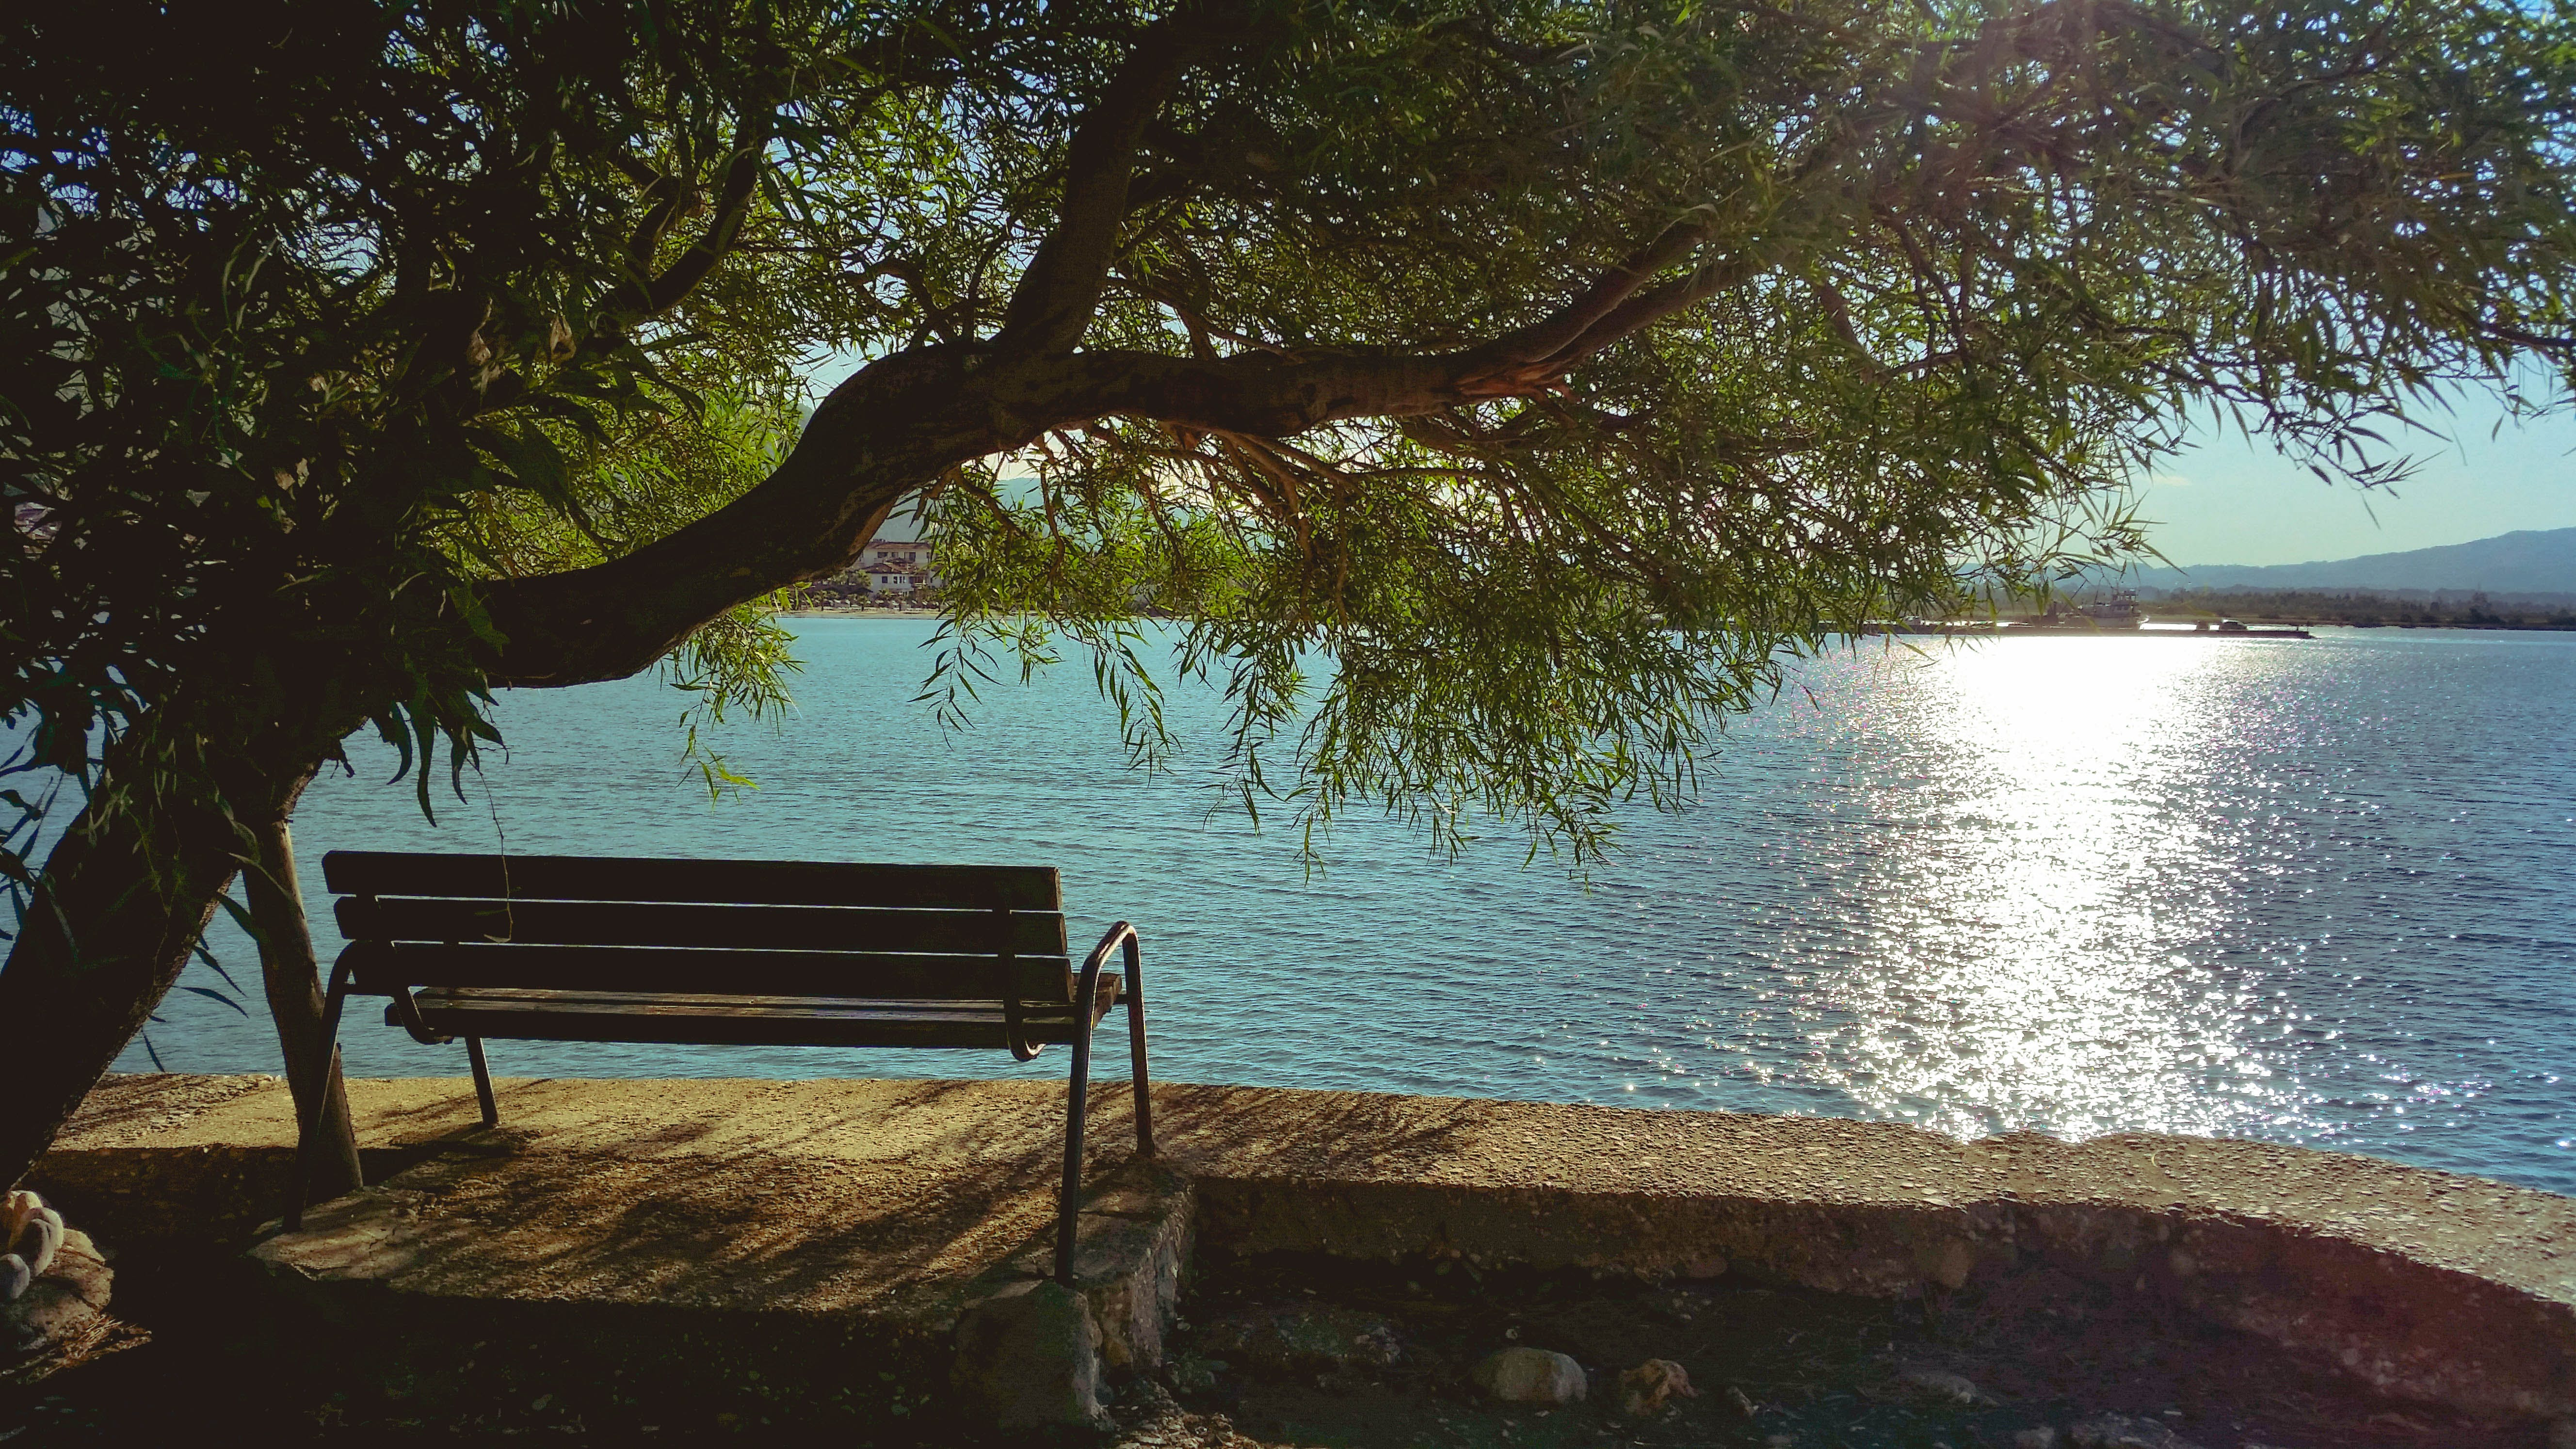 Bench Under Tree during Day Beside Body of Water